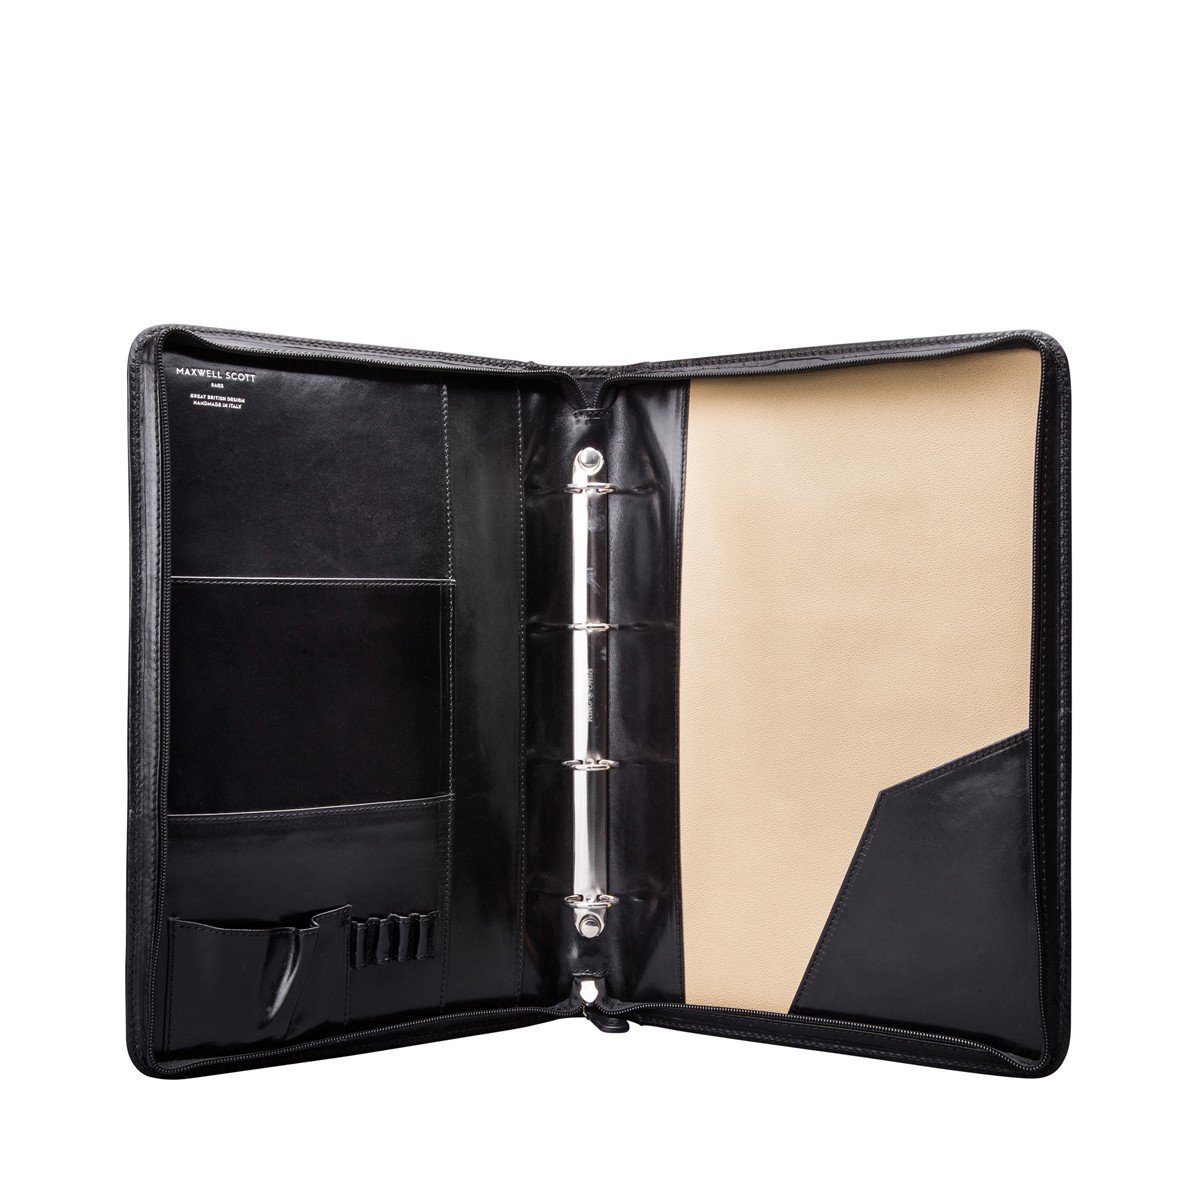 The Veroli Maxwell Scott Luxury Leather Conference Folder with Ringbinder//Zipped